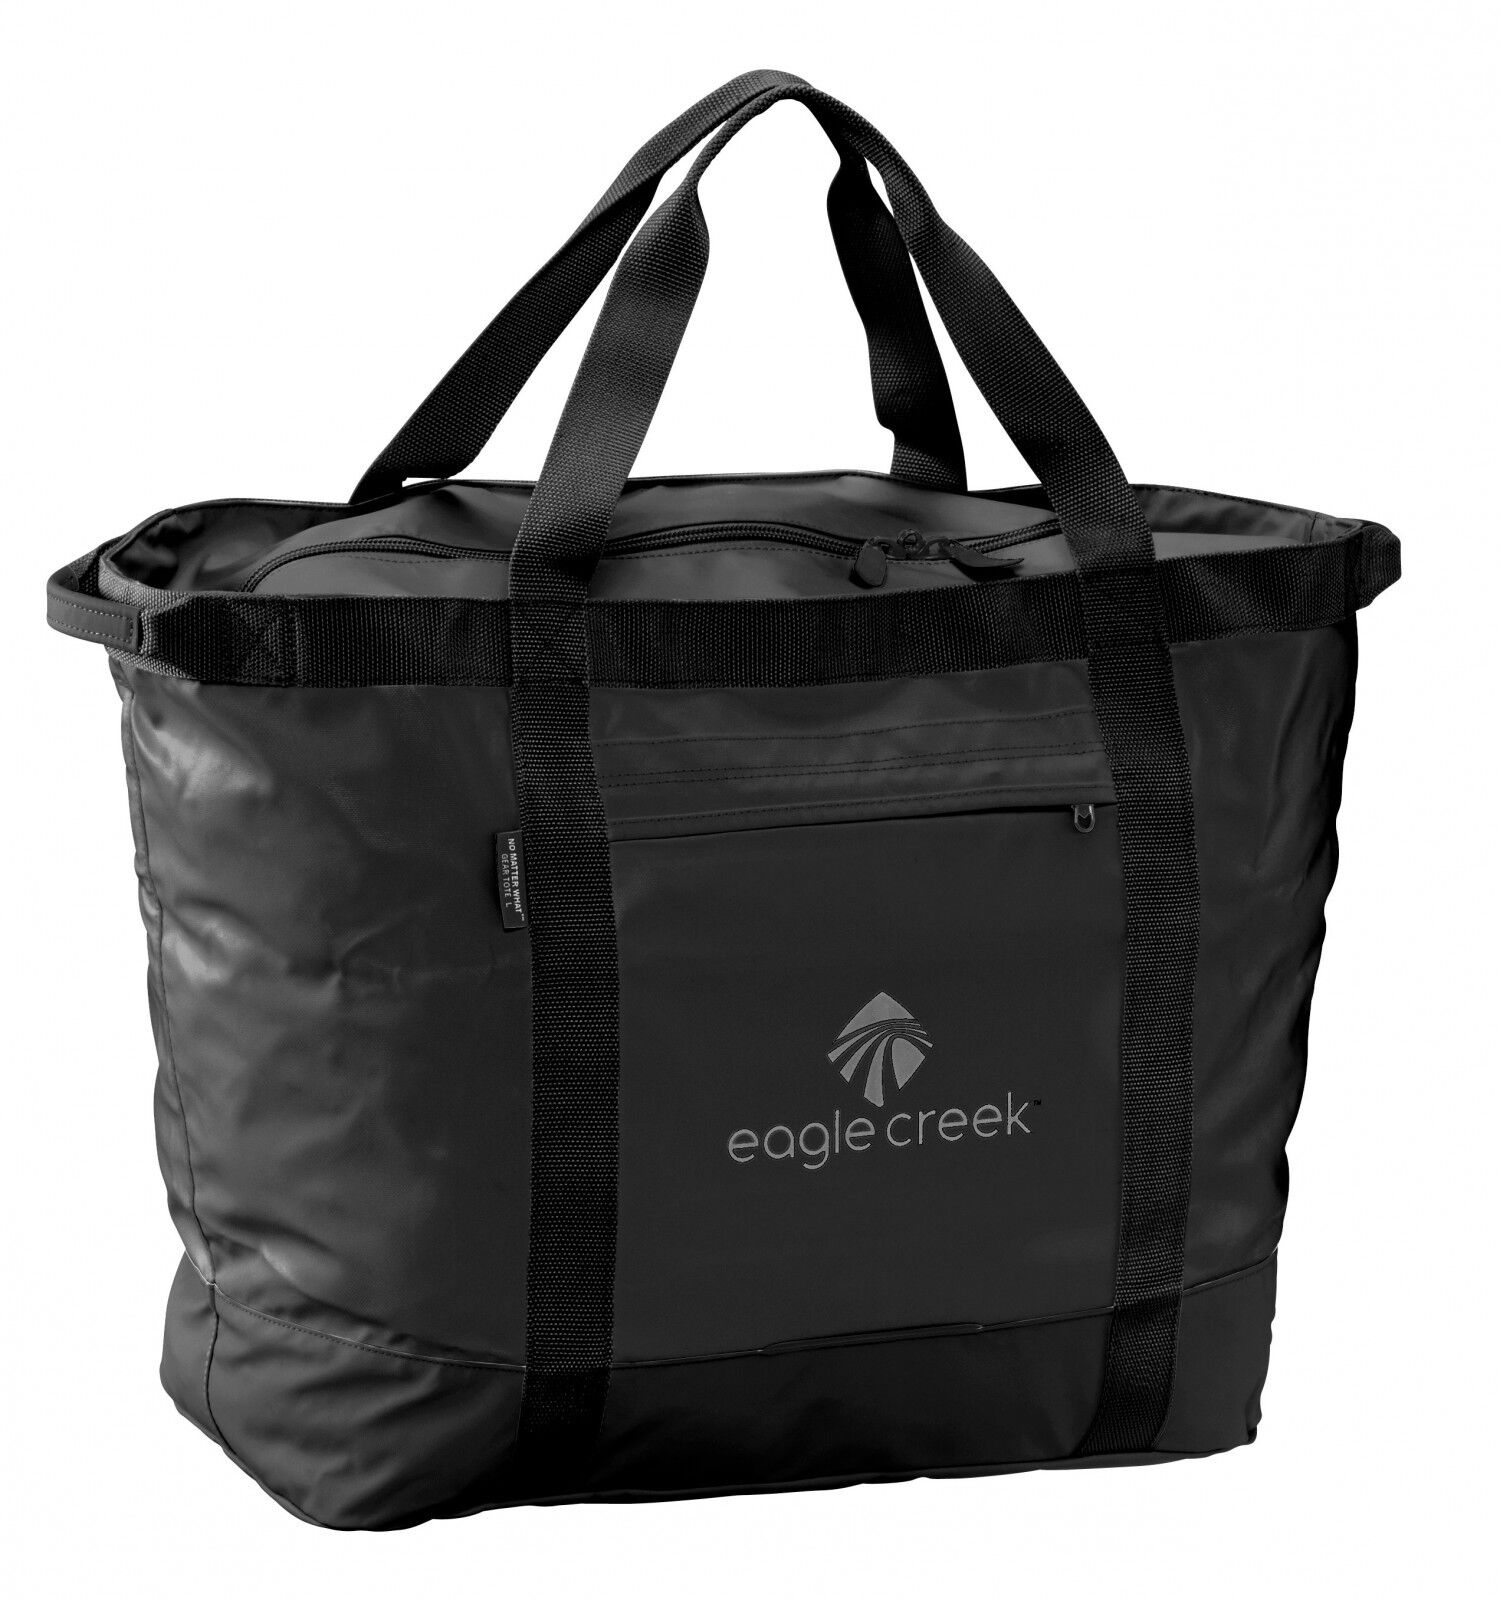 Eagle creek No Matter What Gear Tote L Tasche Shopper Schultertasche black